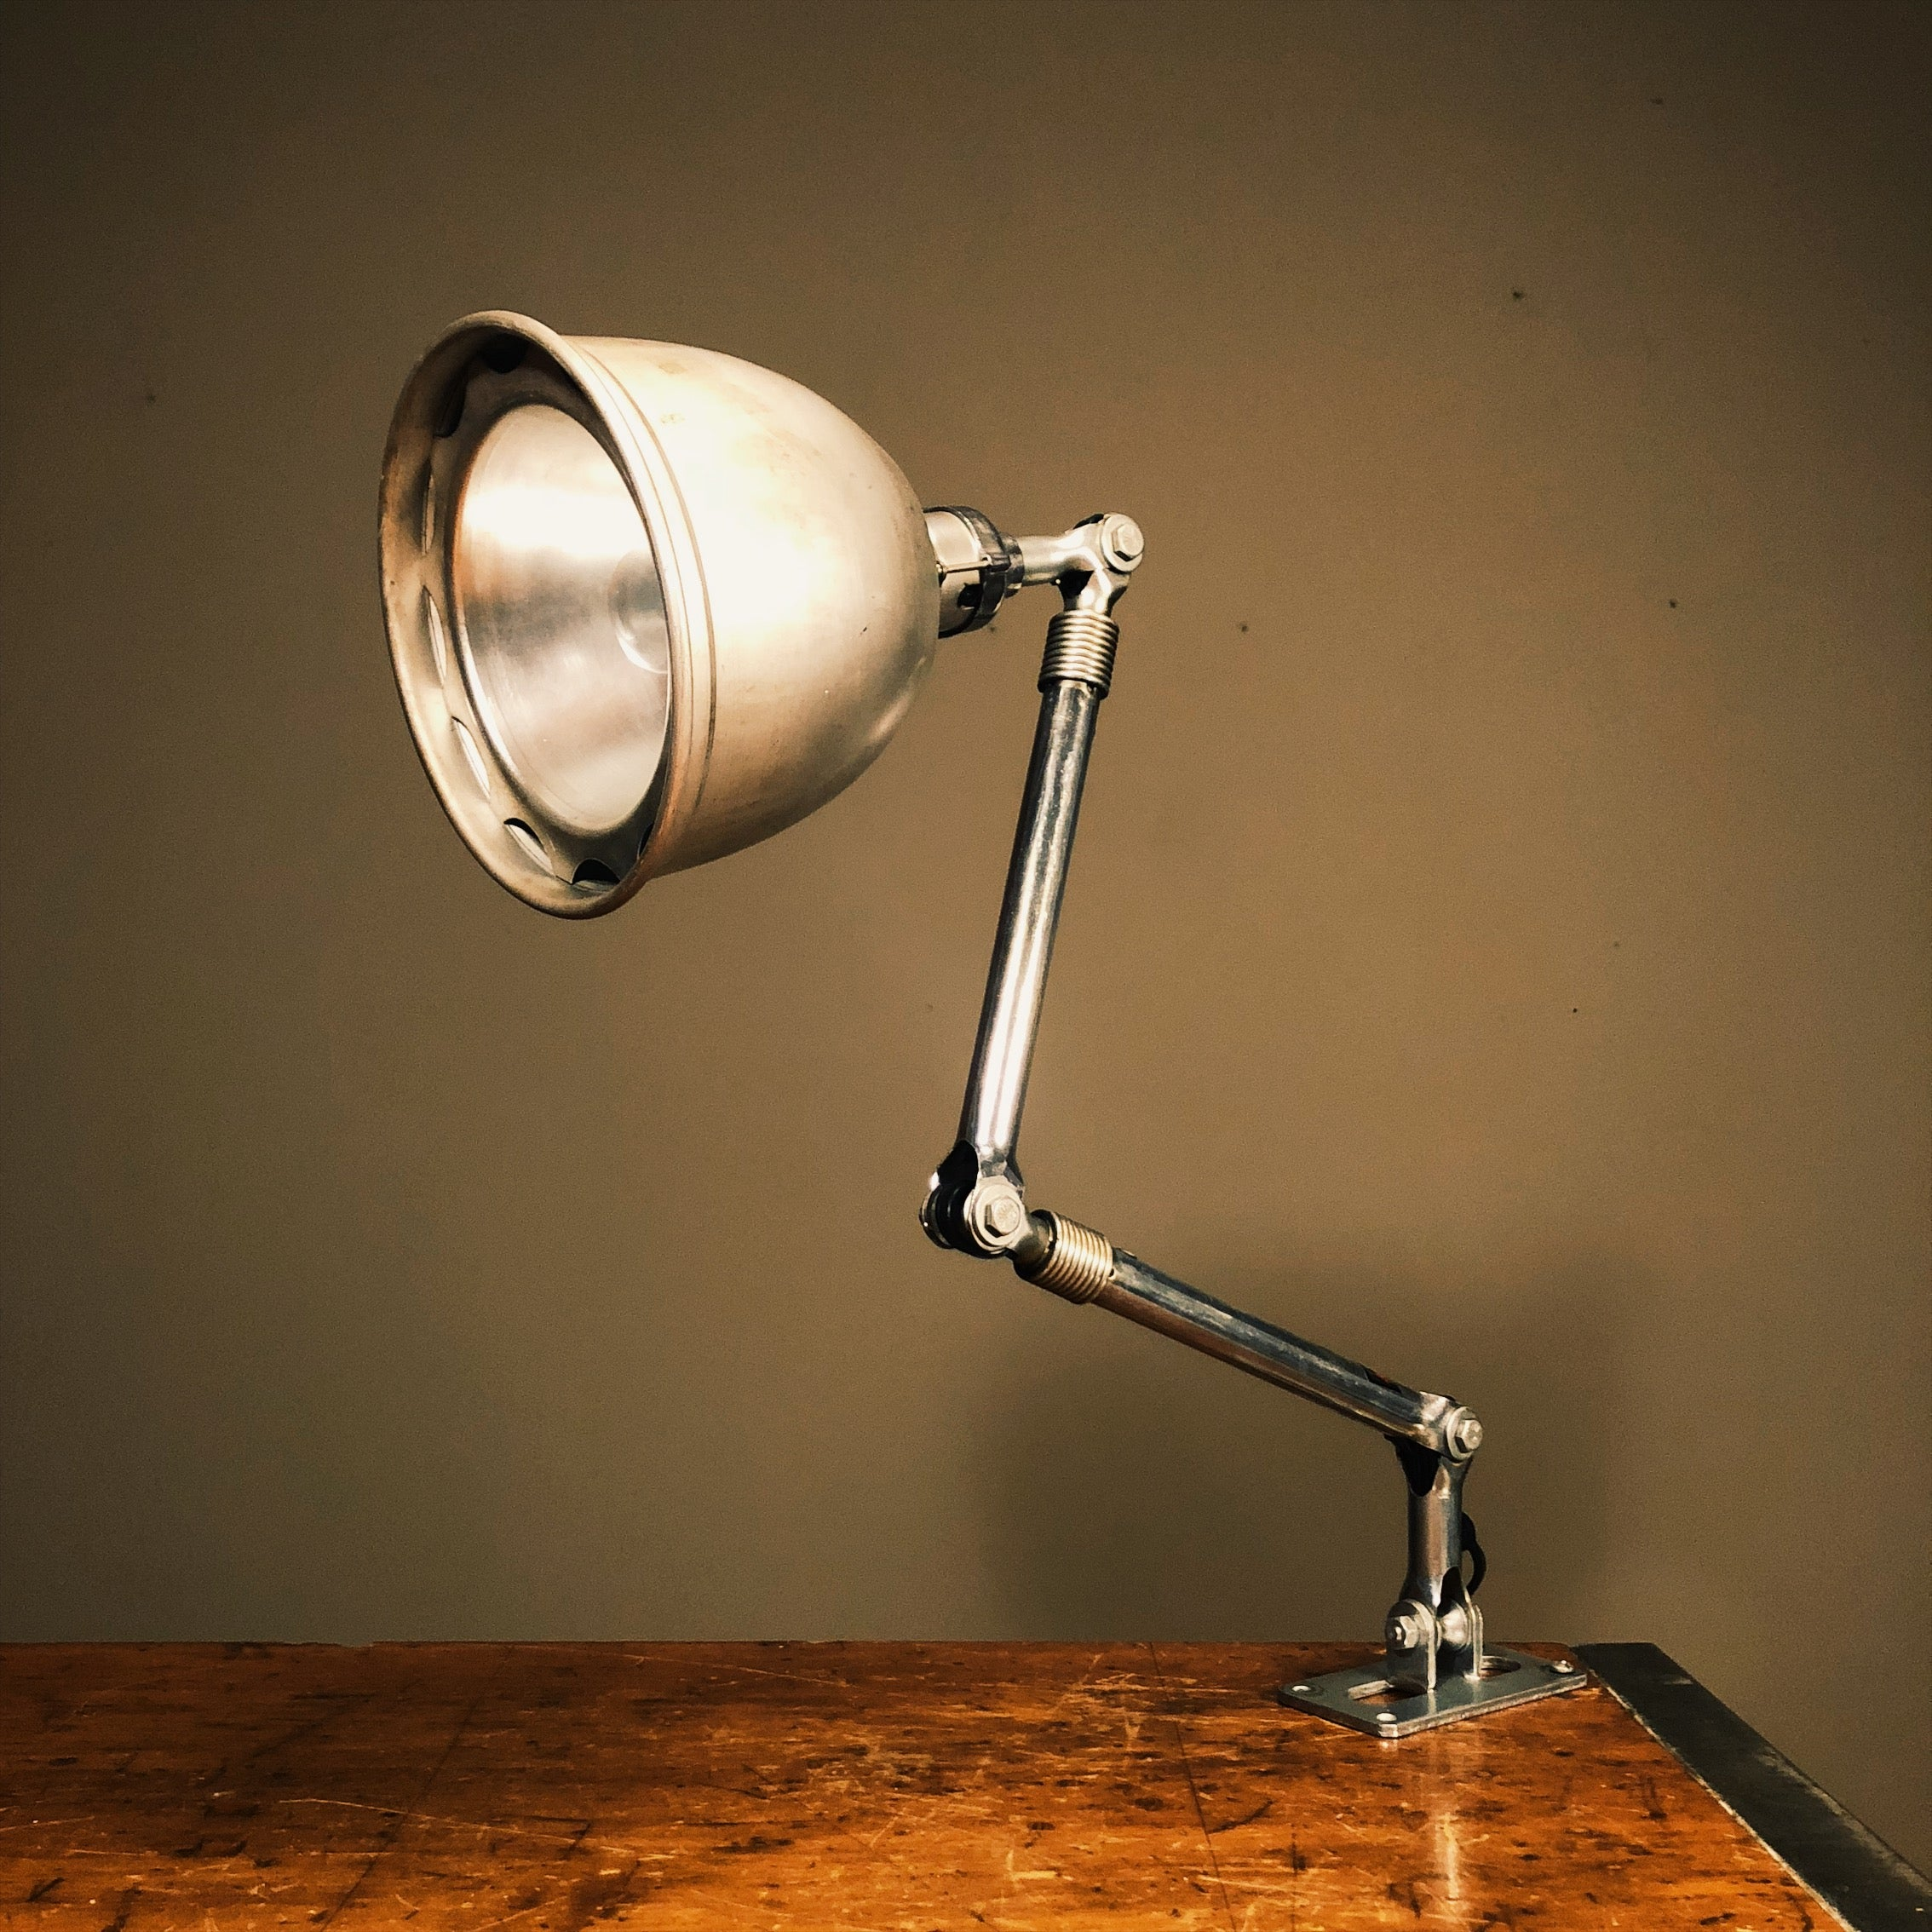 Vintage Ajusco Industrial Light with Insulated Shade and Wall Mount 1